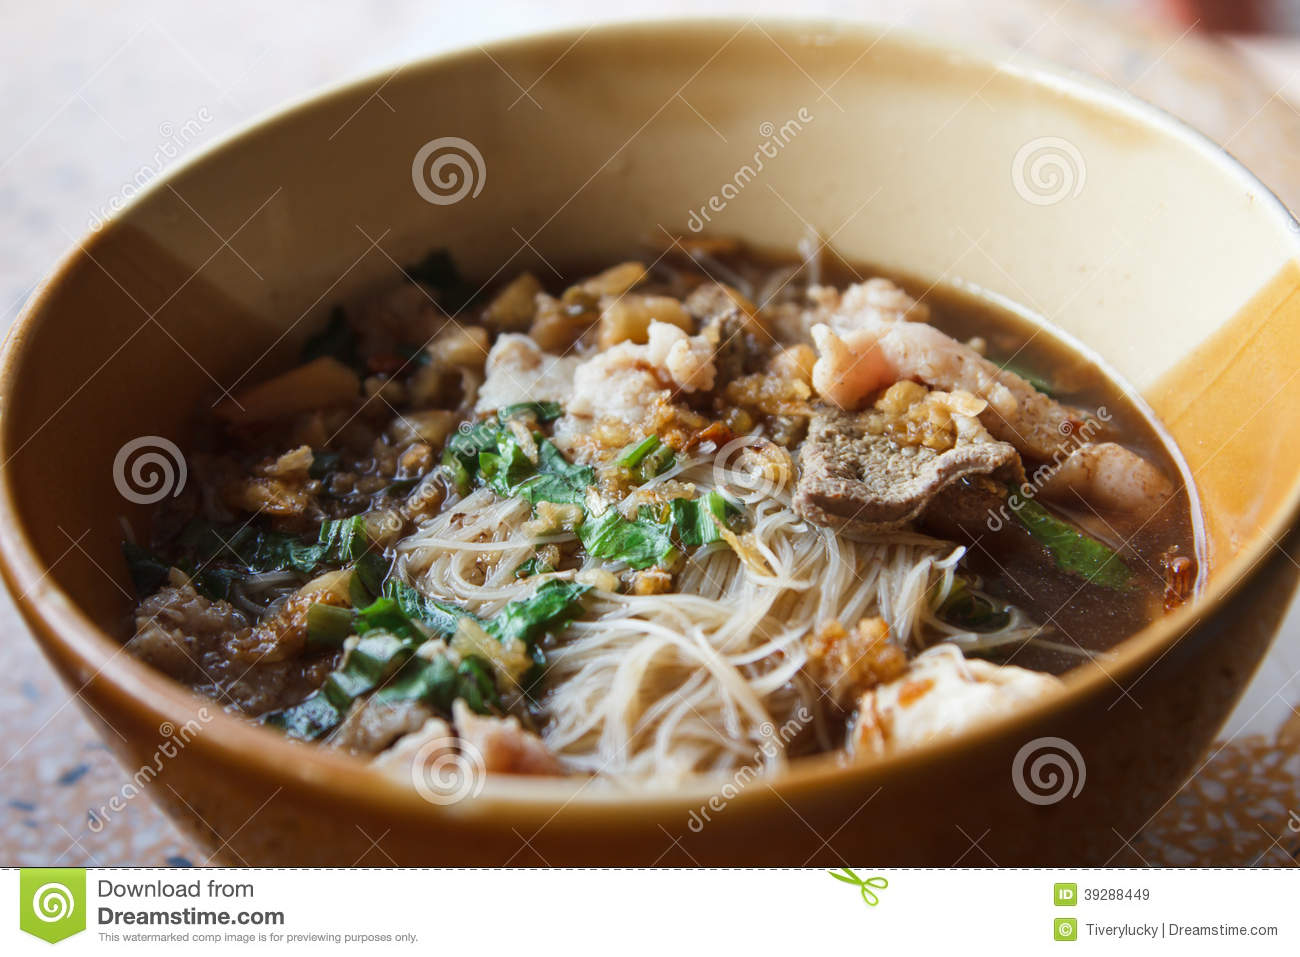 Noodles In Soup Spicy Asian Style. Stock Photo - Image: 39288449